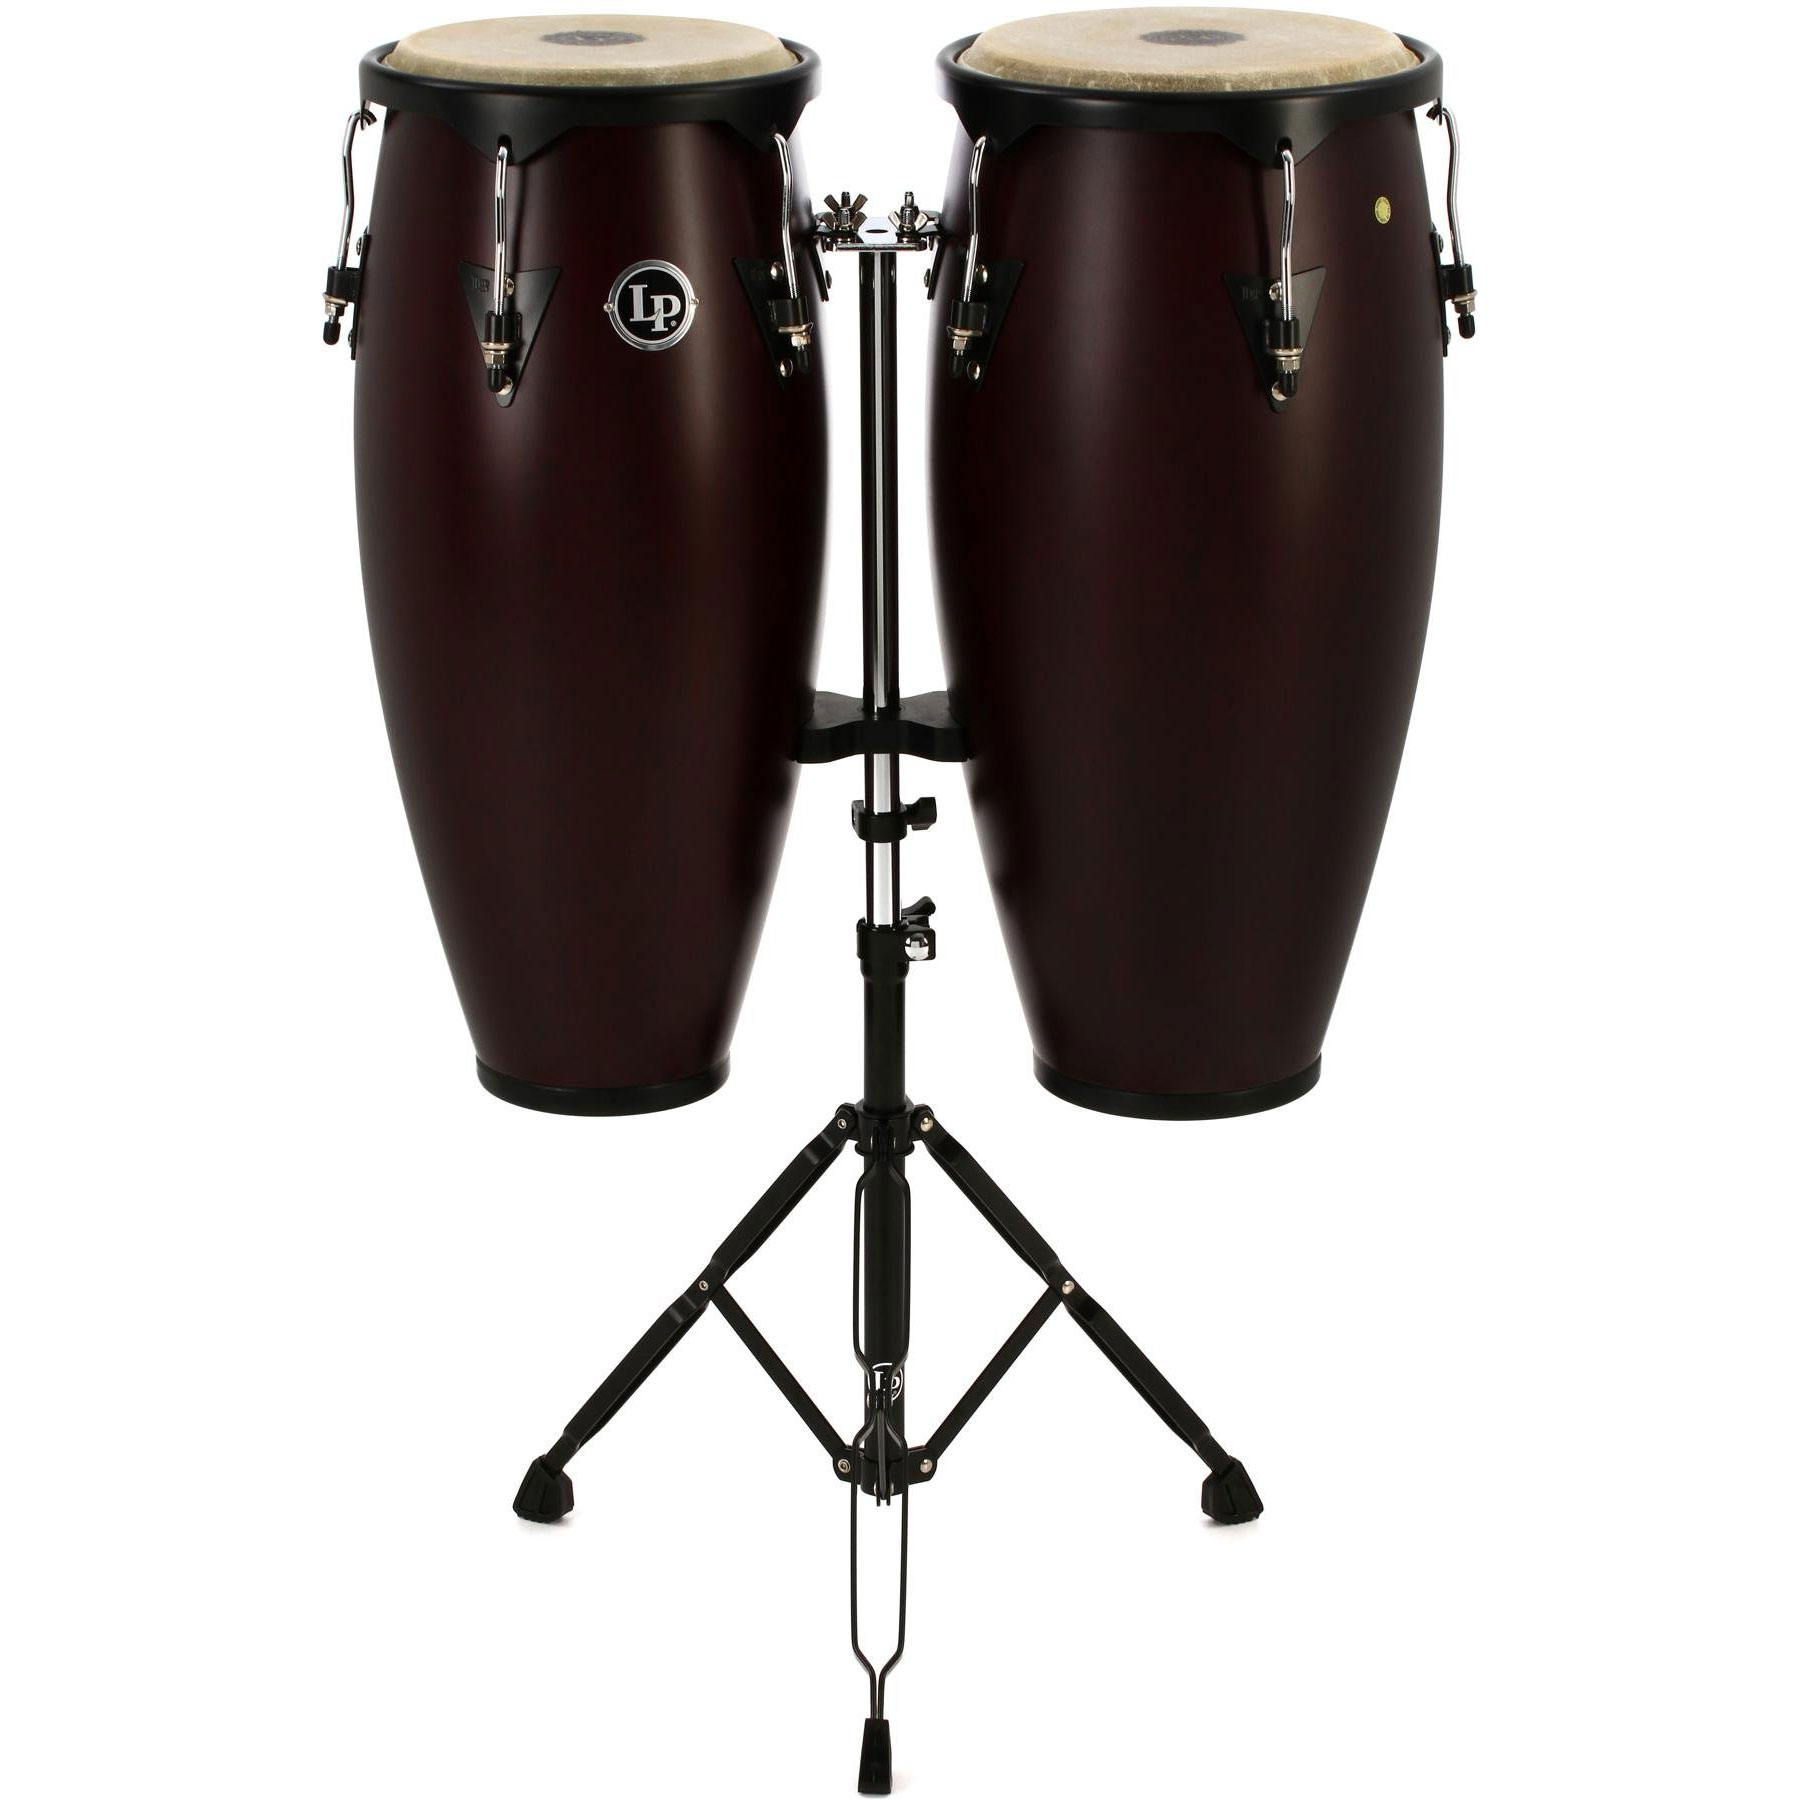 """LP 10"""" & 11"""" City Conga Set in Black with Stand"""